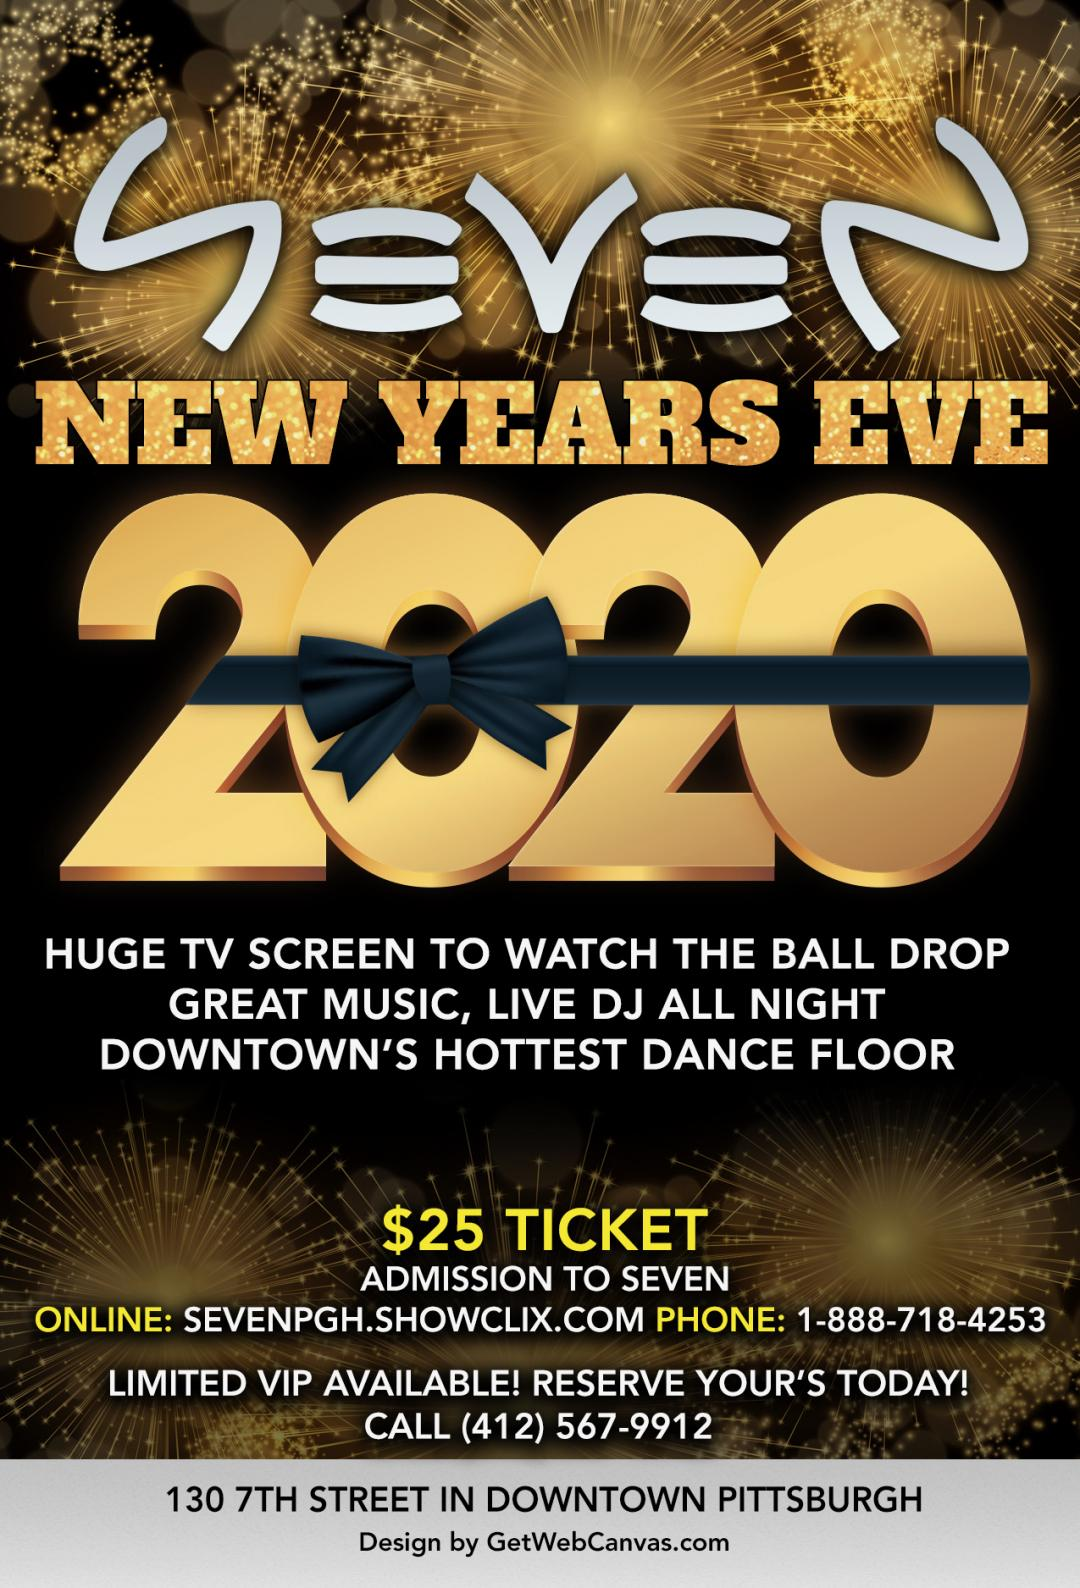 Tickets for New Year's Eve 2020 in Pittsburgh from ShowClix